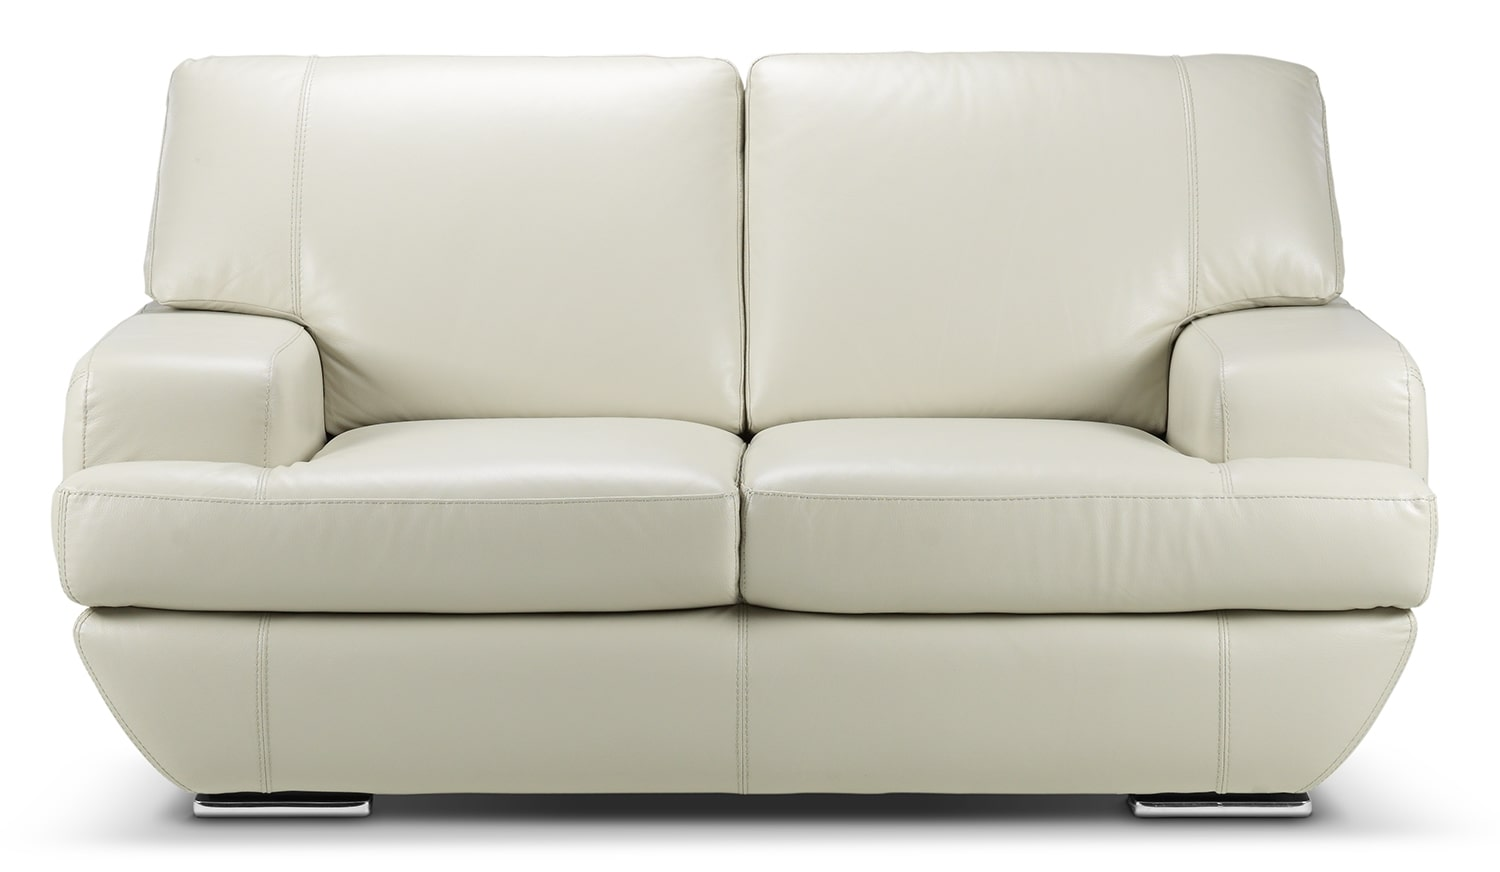 Bryce white italian leather sofa and loveseat 15814565 overstock - Miranda Sofa Loveseat And Chair Set Off White Leon 39 S